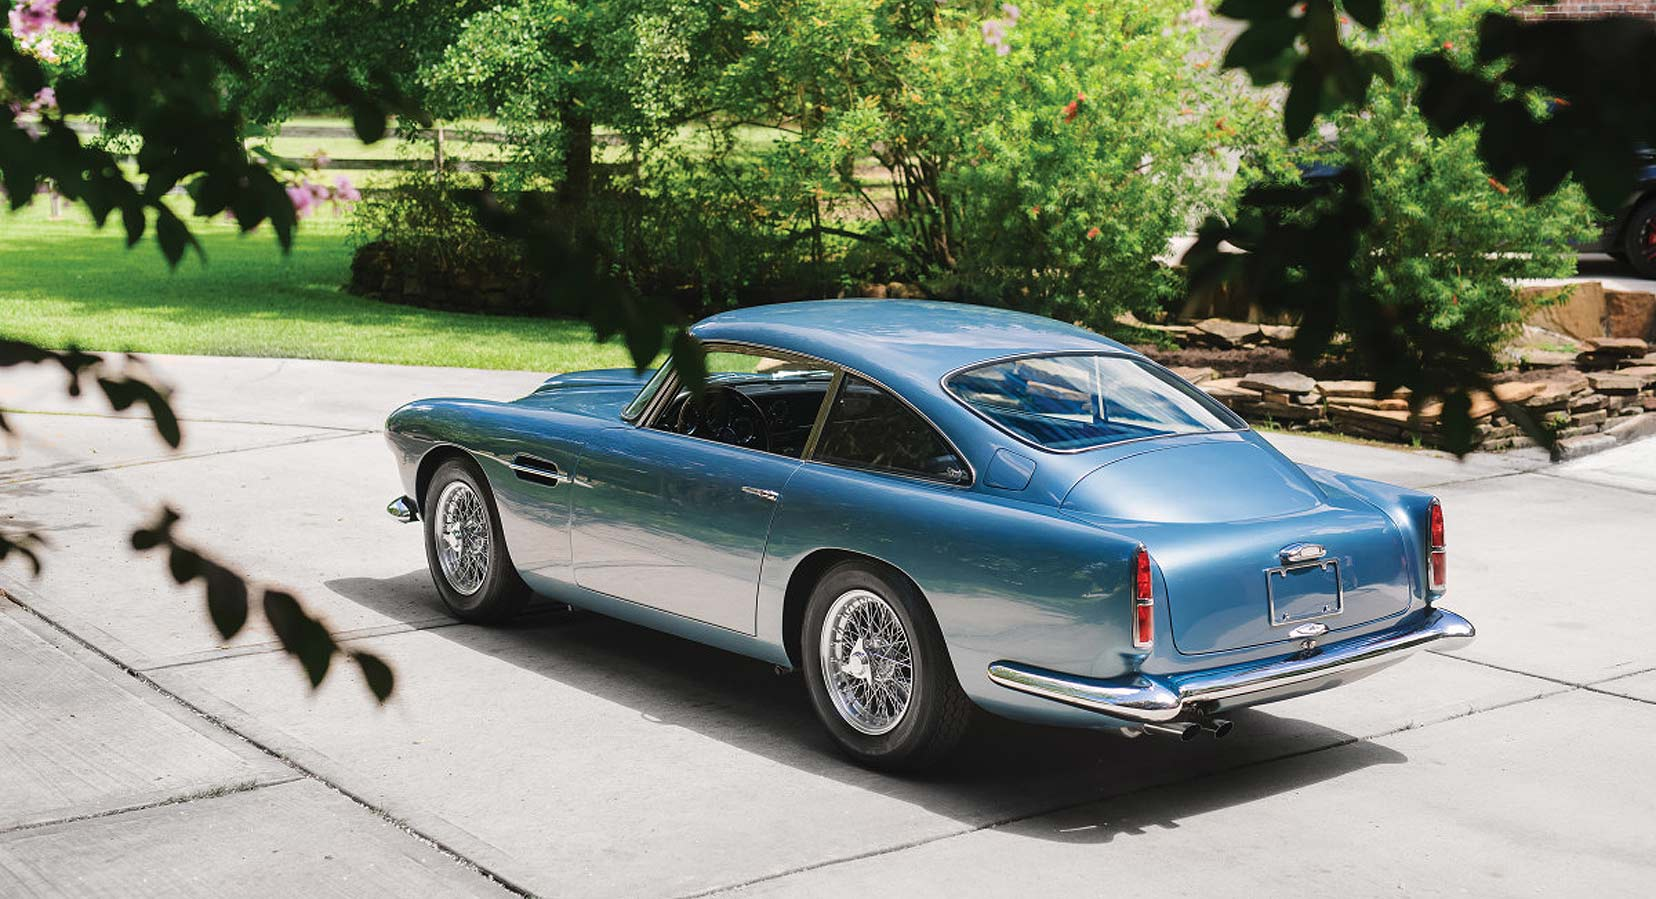 Classic Car Find of the Week: 1961 Aston Martin DB4 Series II